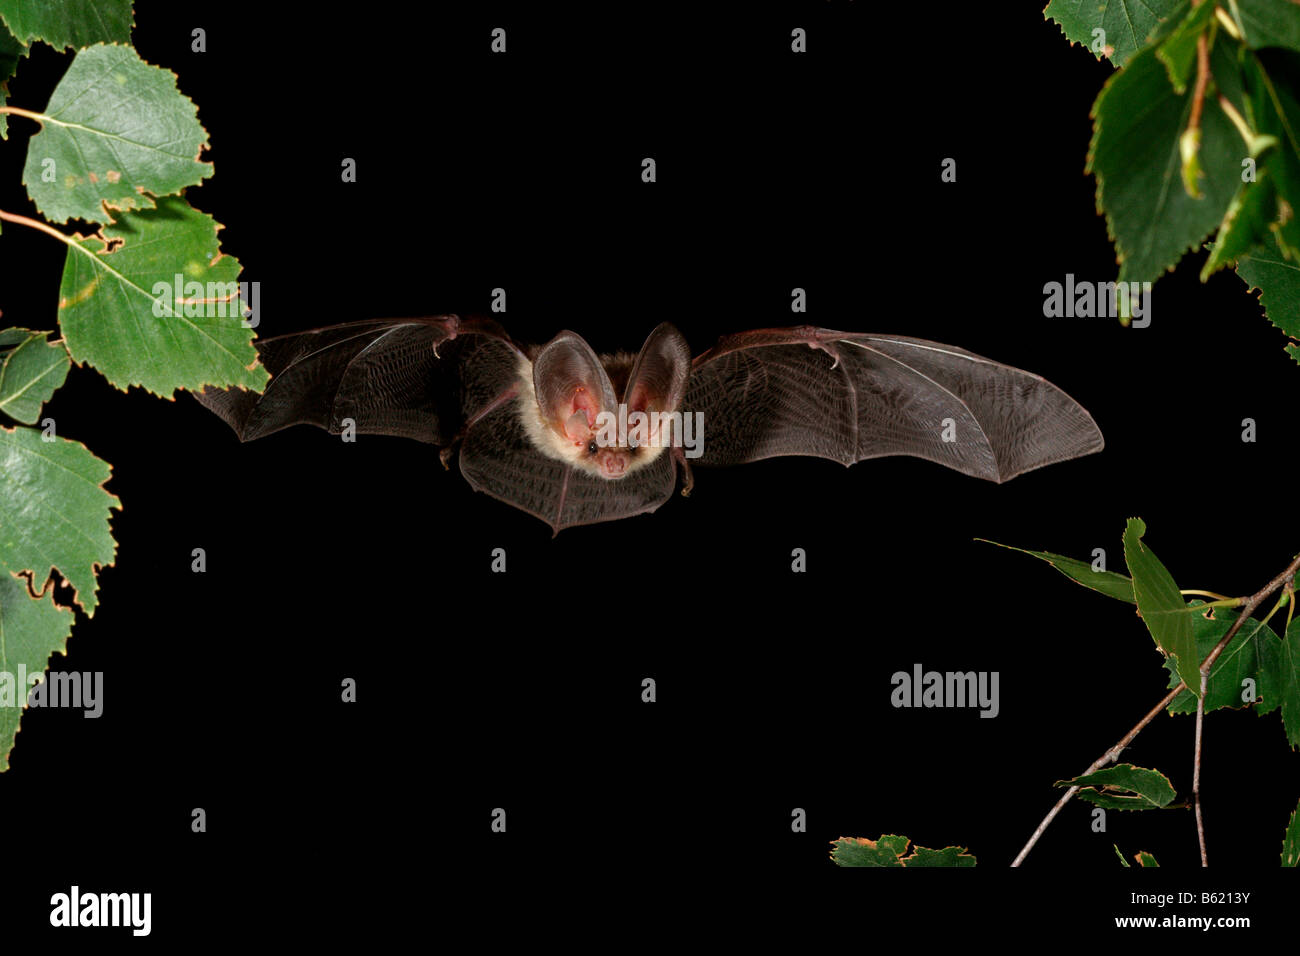 Brown Long-eared Bat or Common Long-eared Bat (Plecotus auritus) - Stock Image